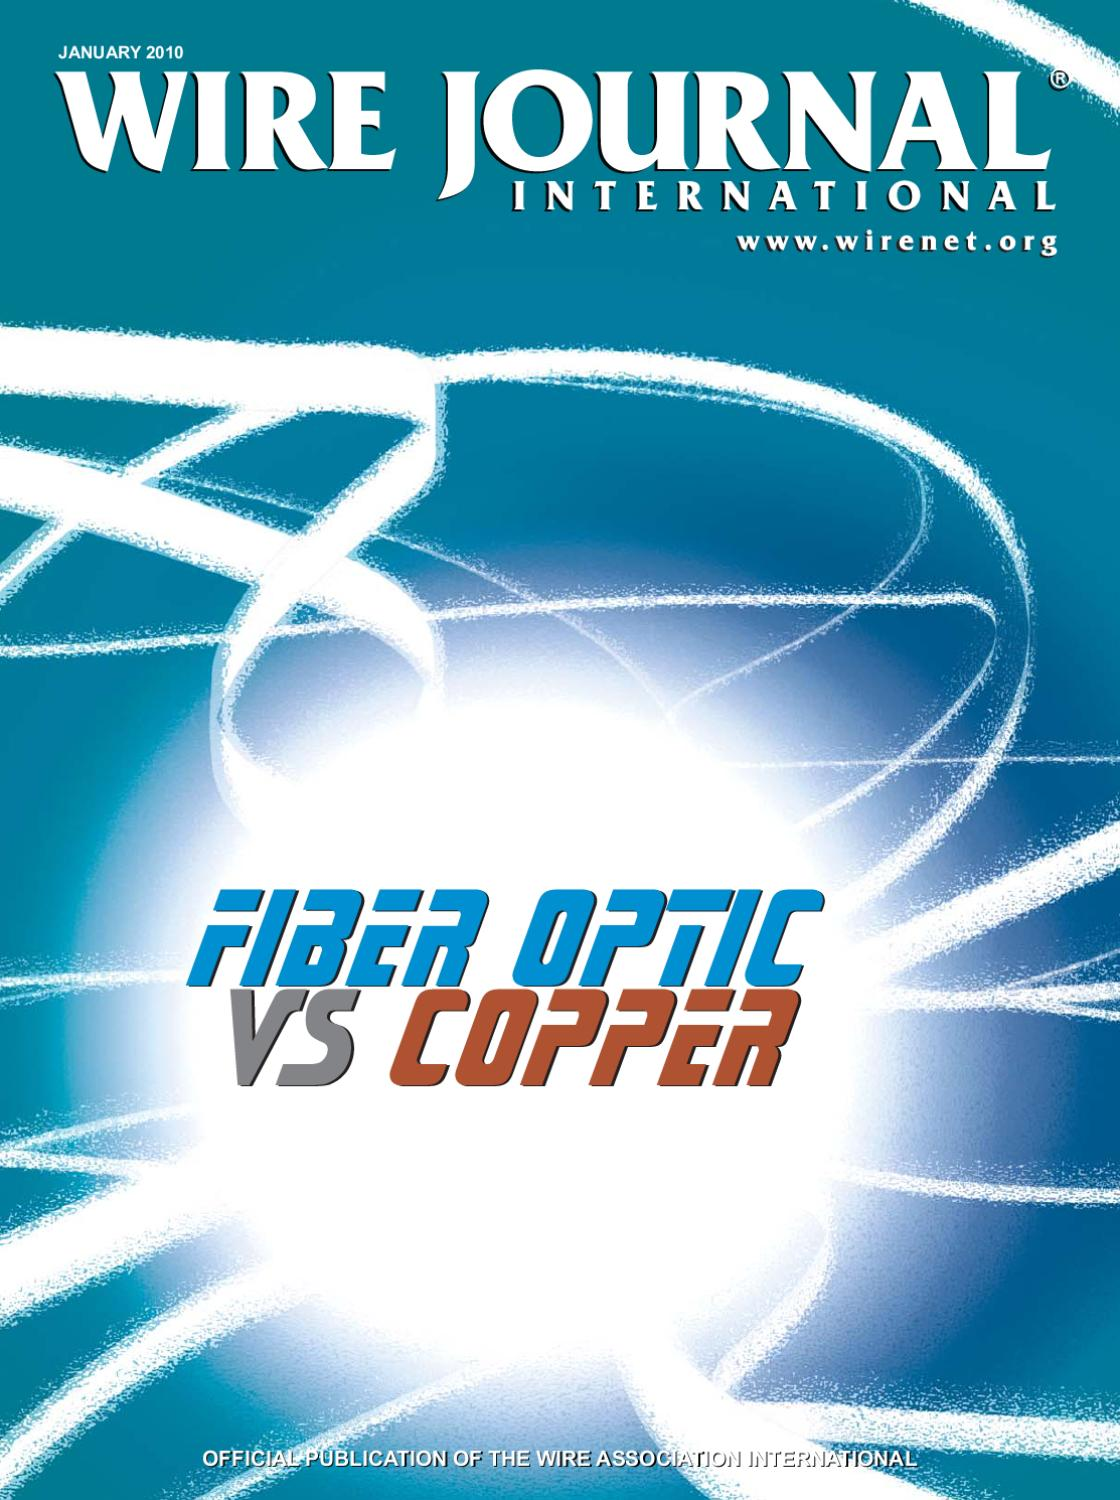 Fiber Optic vs Copper by Wire Journal International, Inc. - issuu